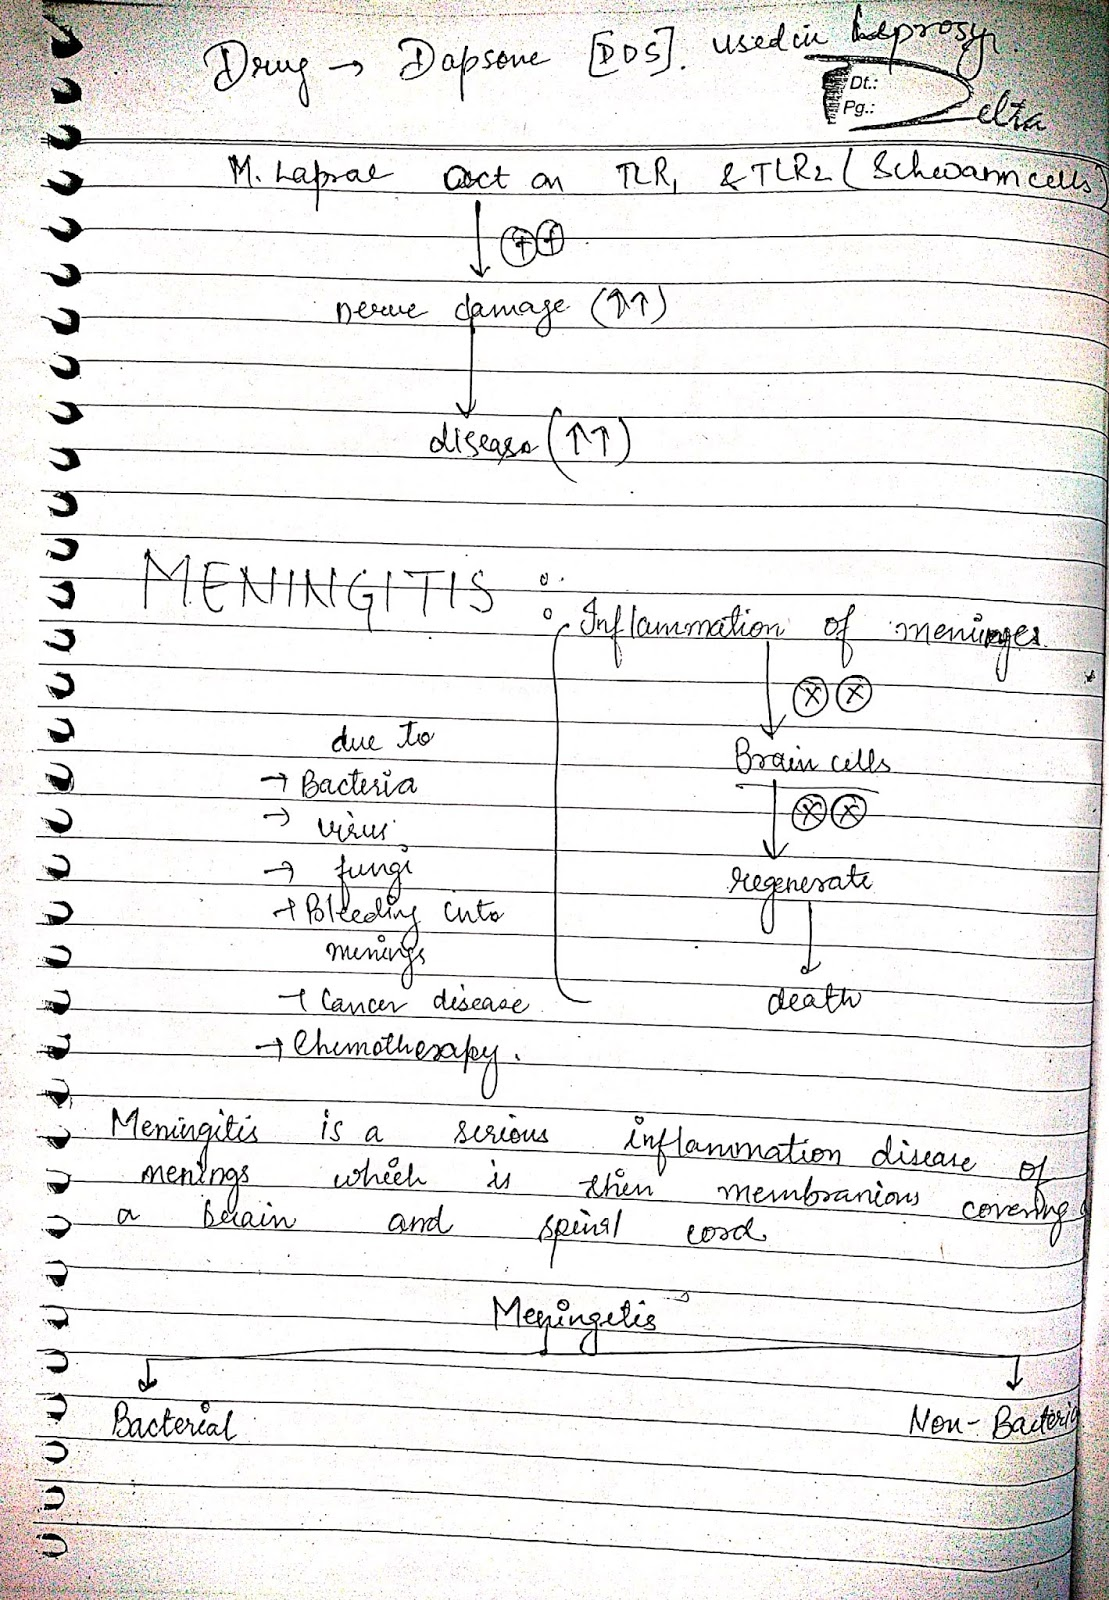 pathophysiology - meningitis